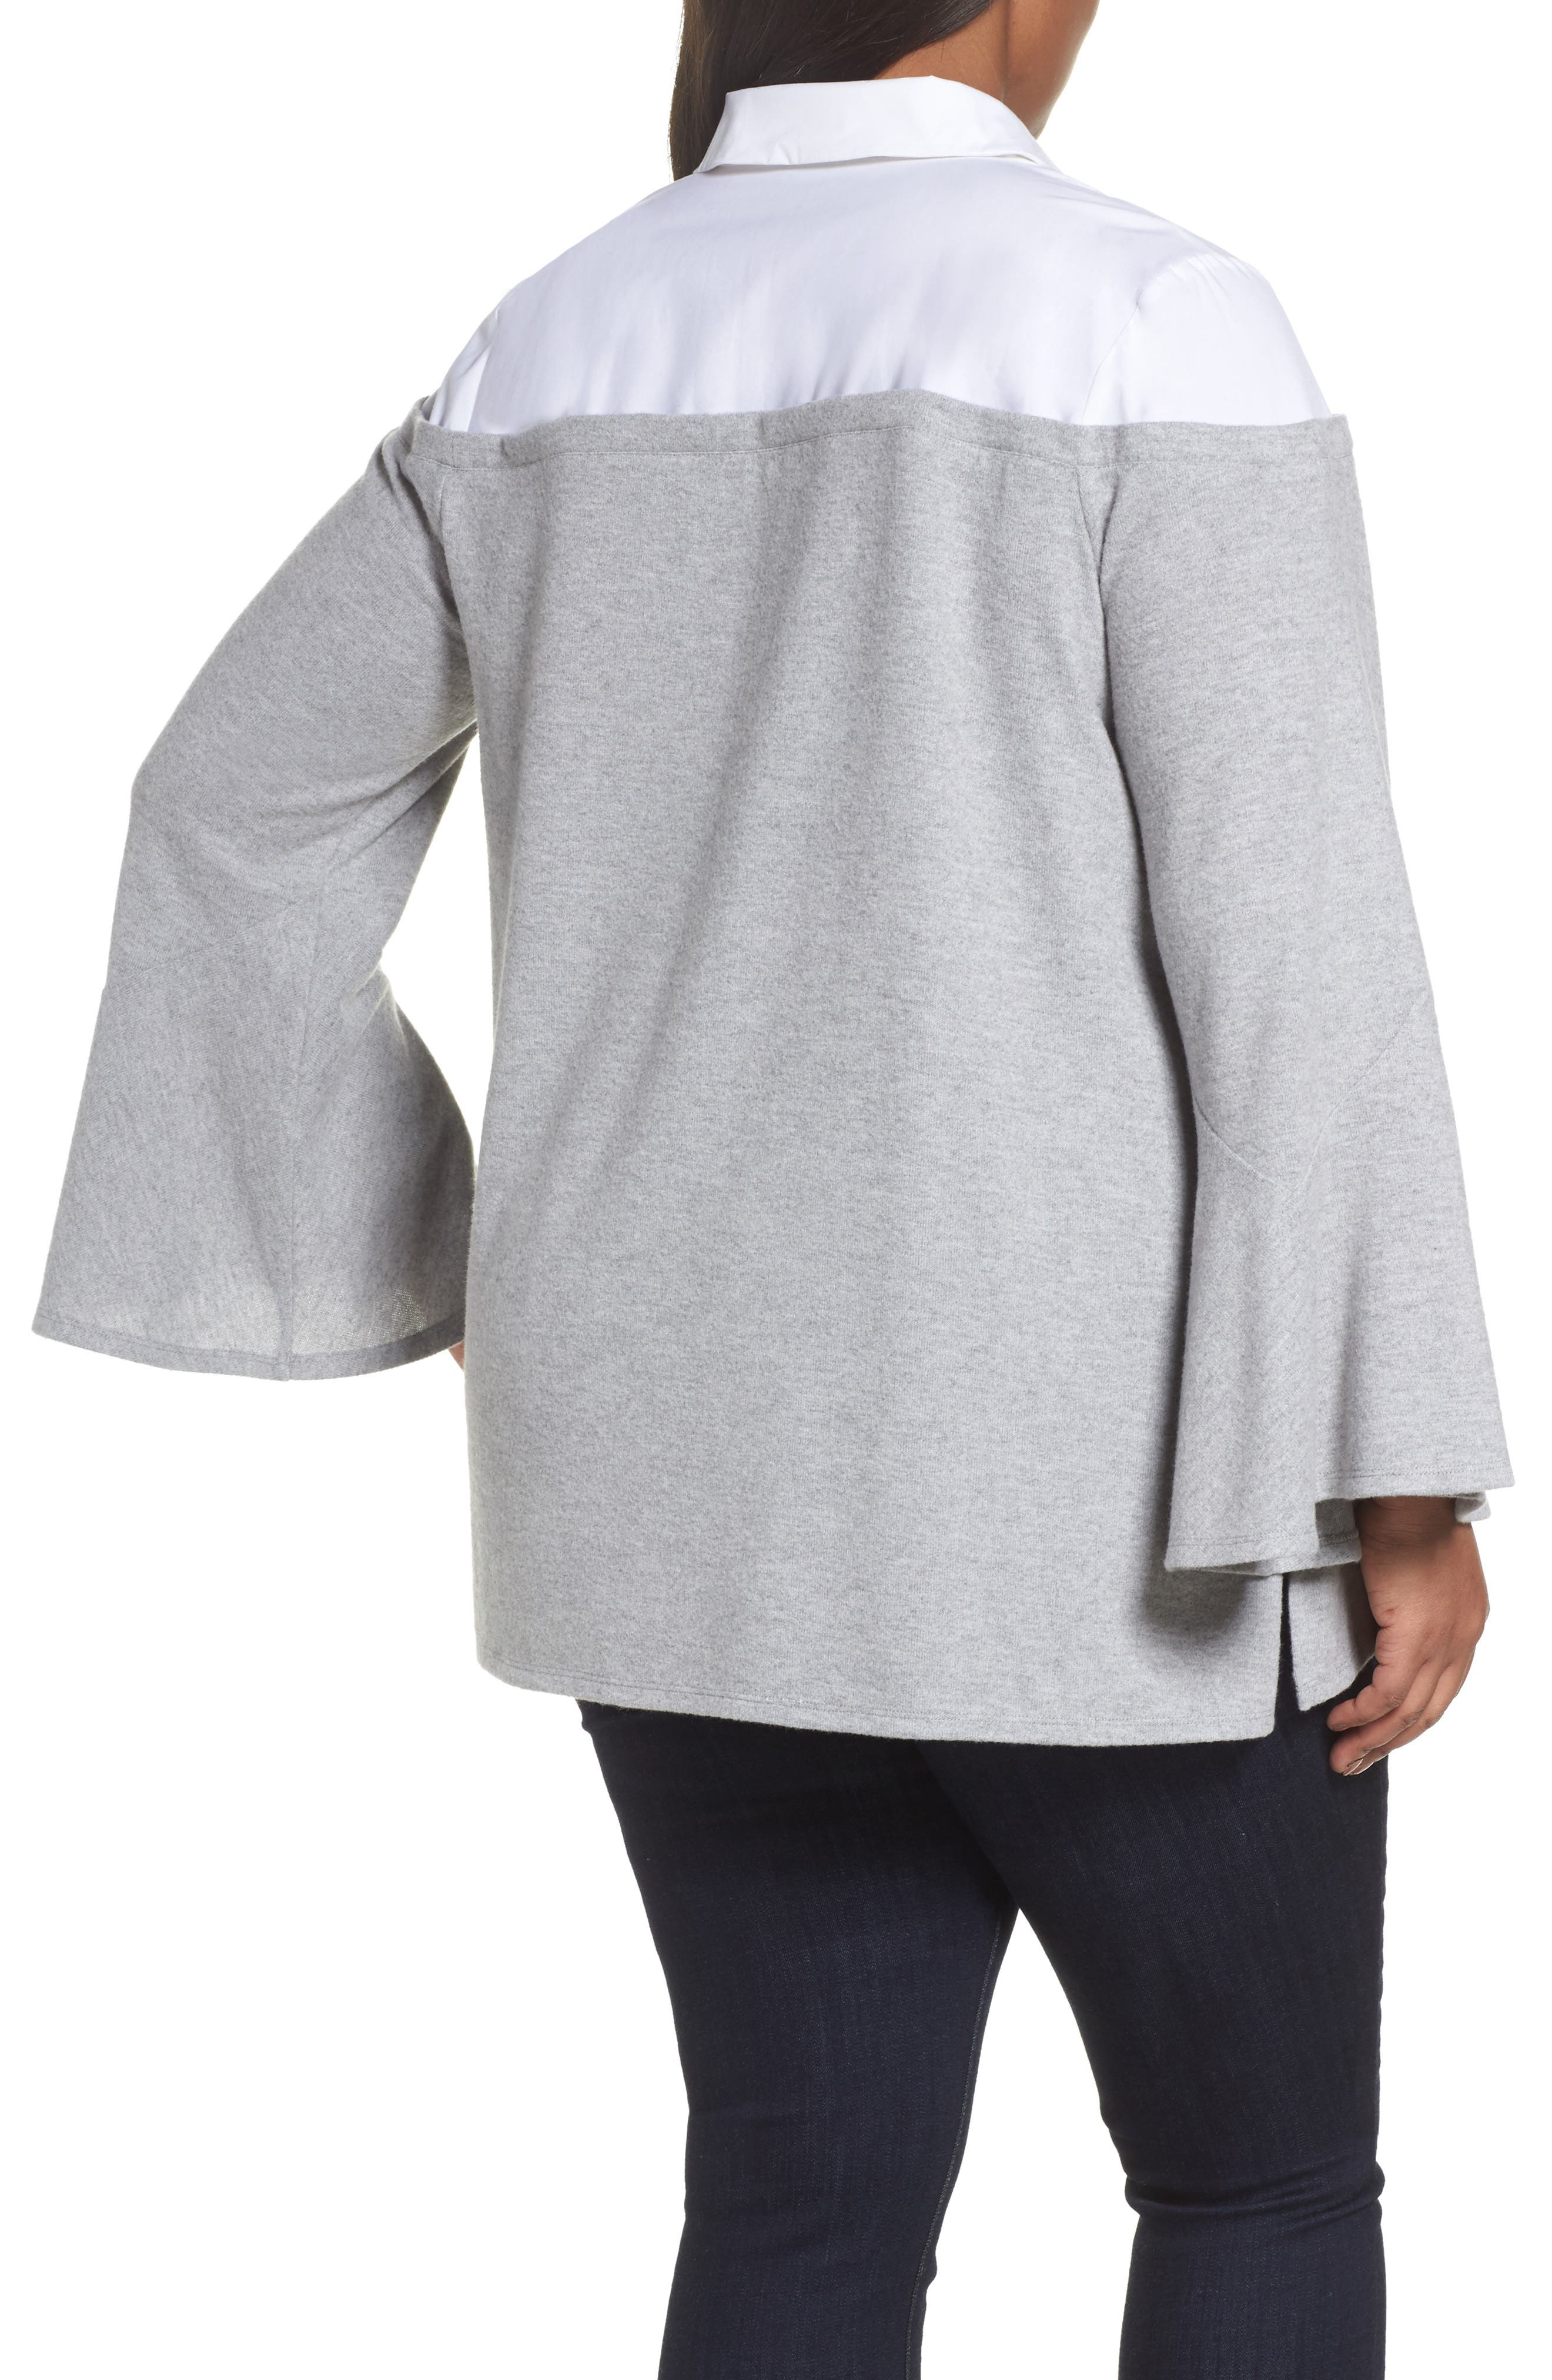 Bell Sleeve Mixed Media Top,                             Alternate thumbnail 2, color,                             Light Heather Grey